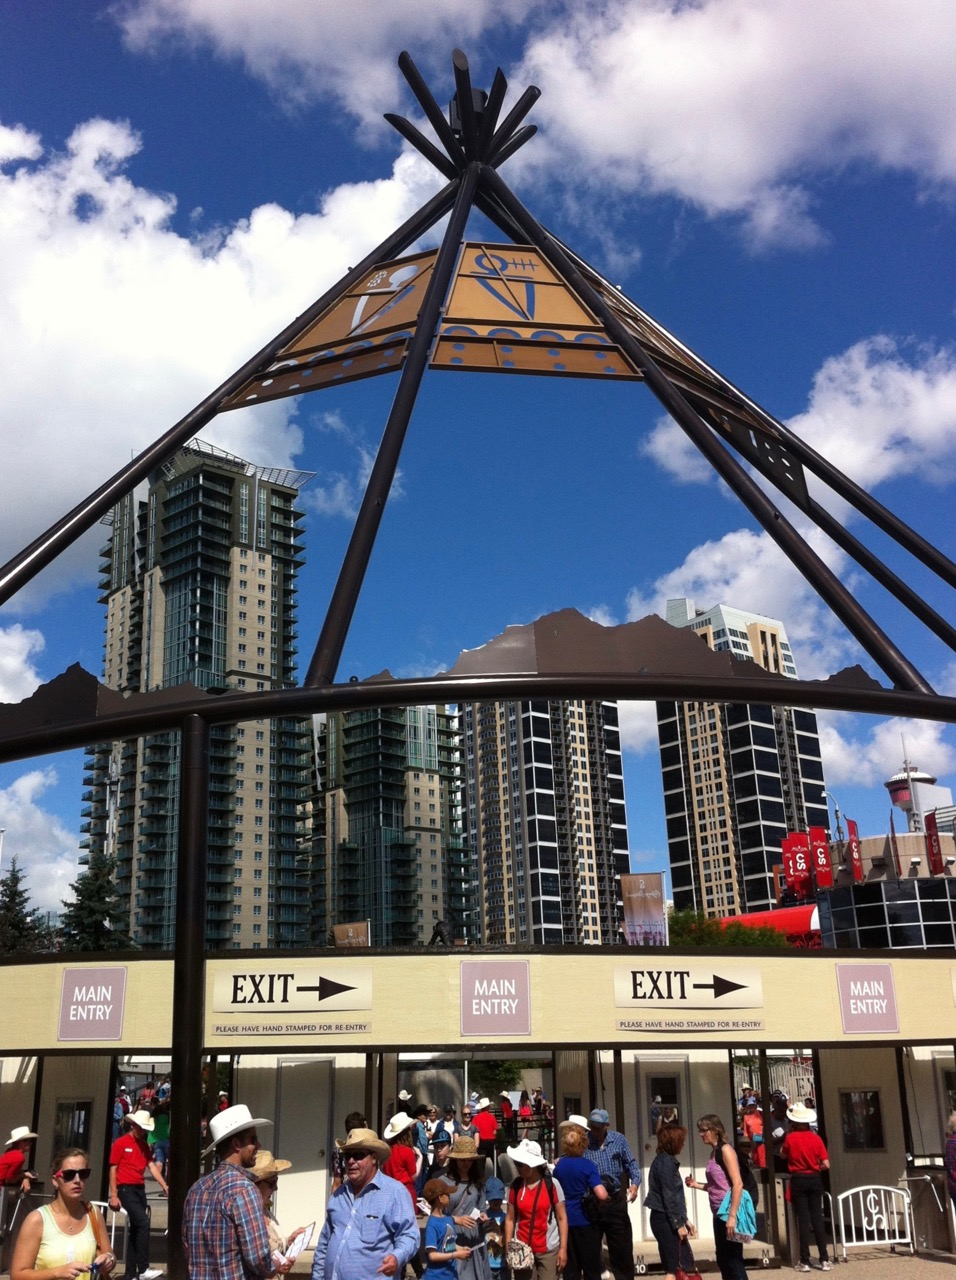 Stampede's Macleod Trail entrance is now being crowed by condo development which is creating new opportunities for Stampede to become a year-round sports, entertainment and educational district.